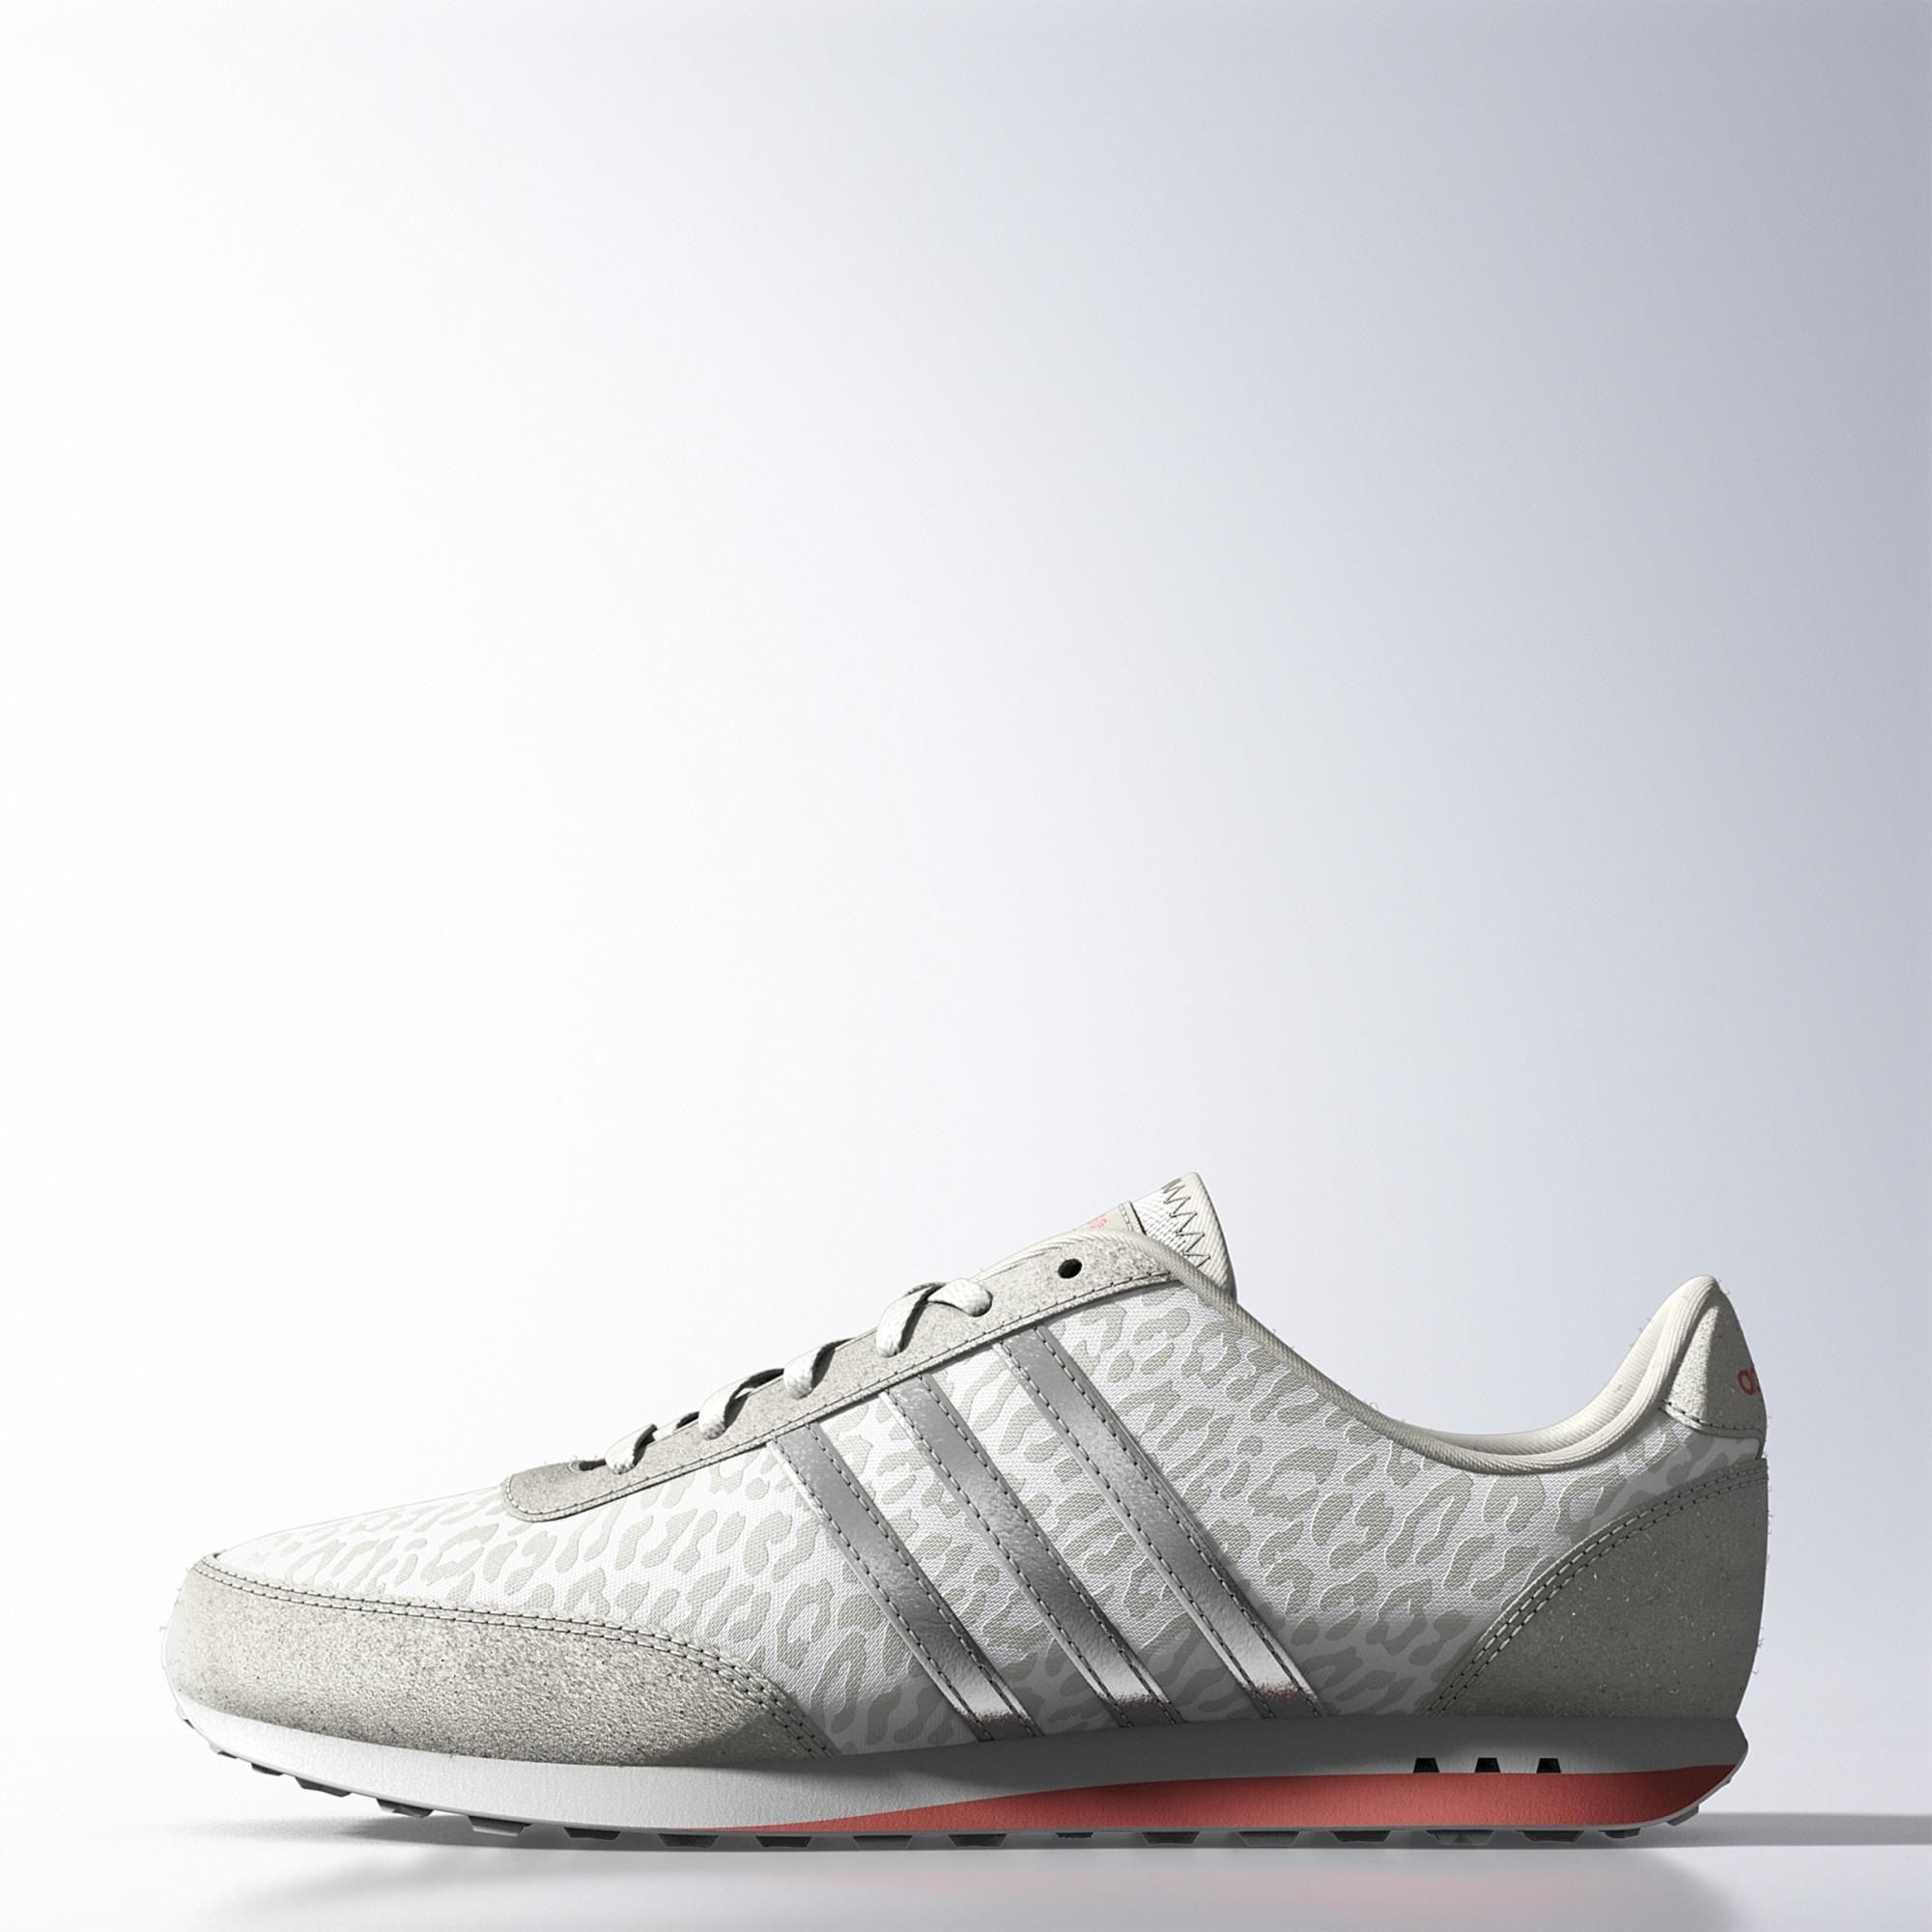 adidas neo style racer